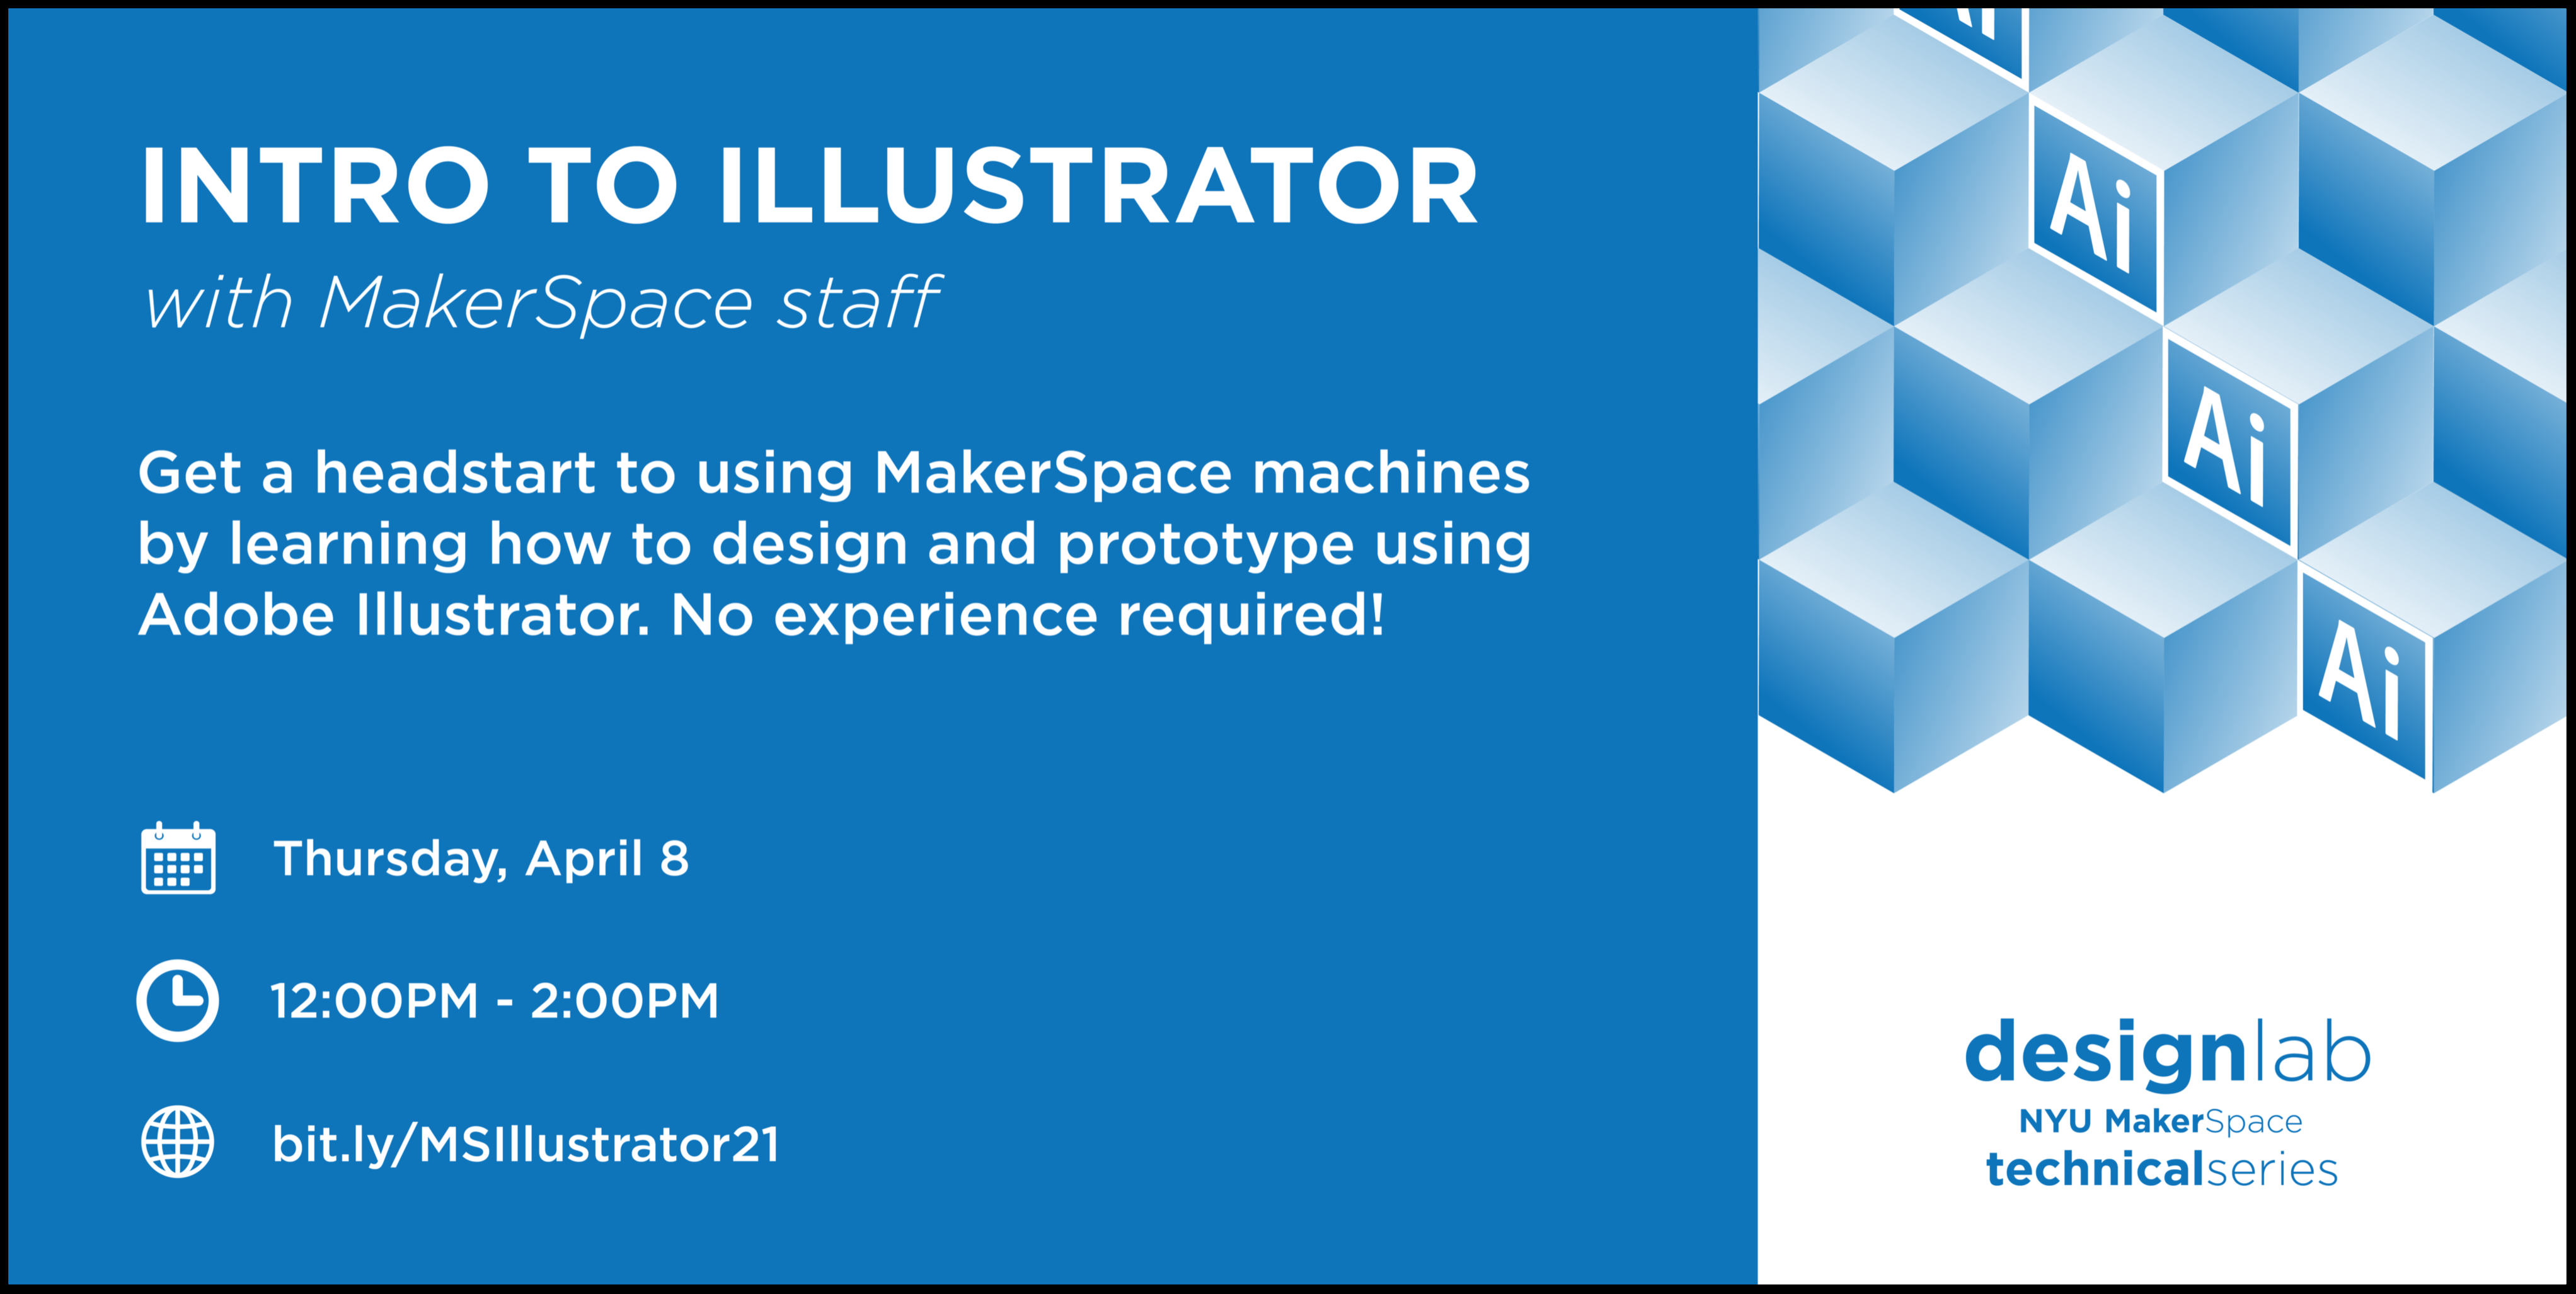 Intro to Illustrator Flyer